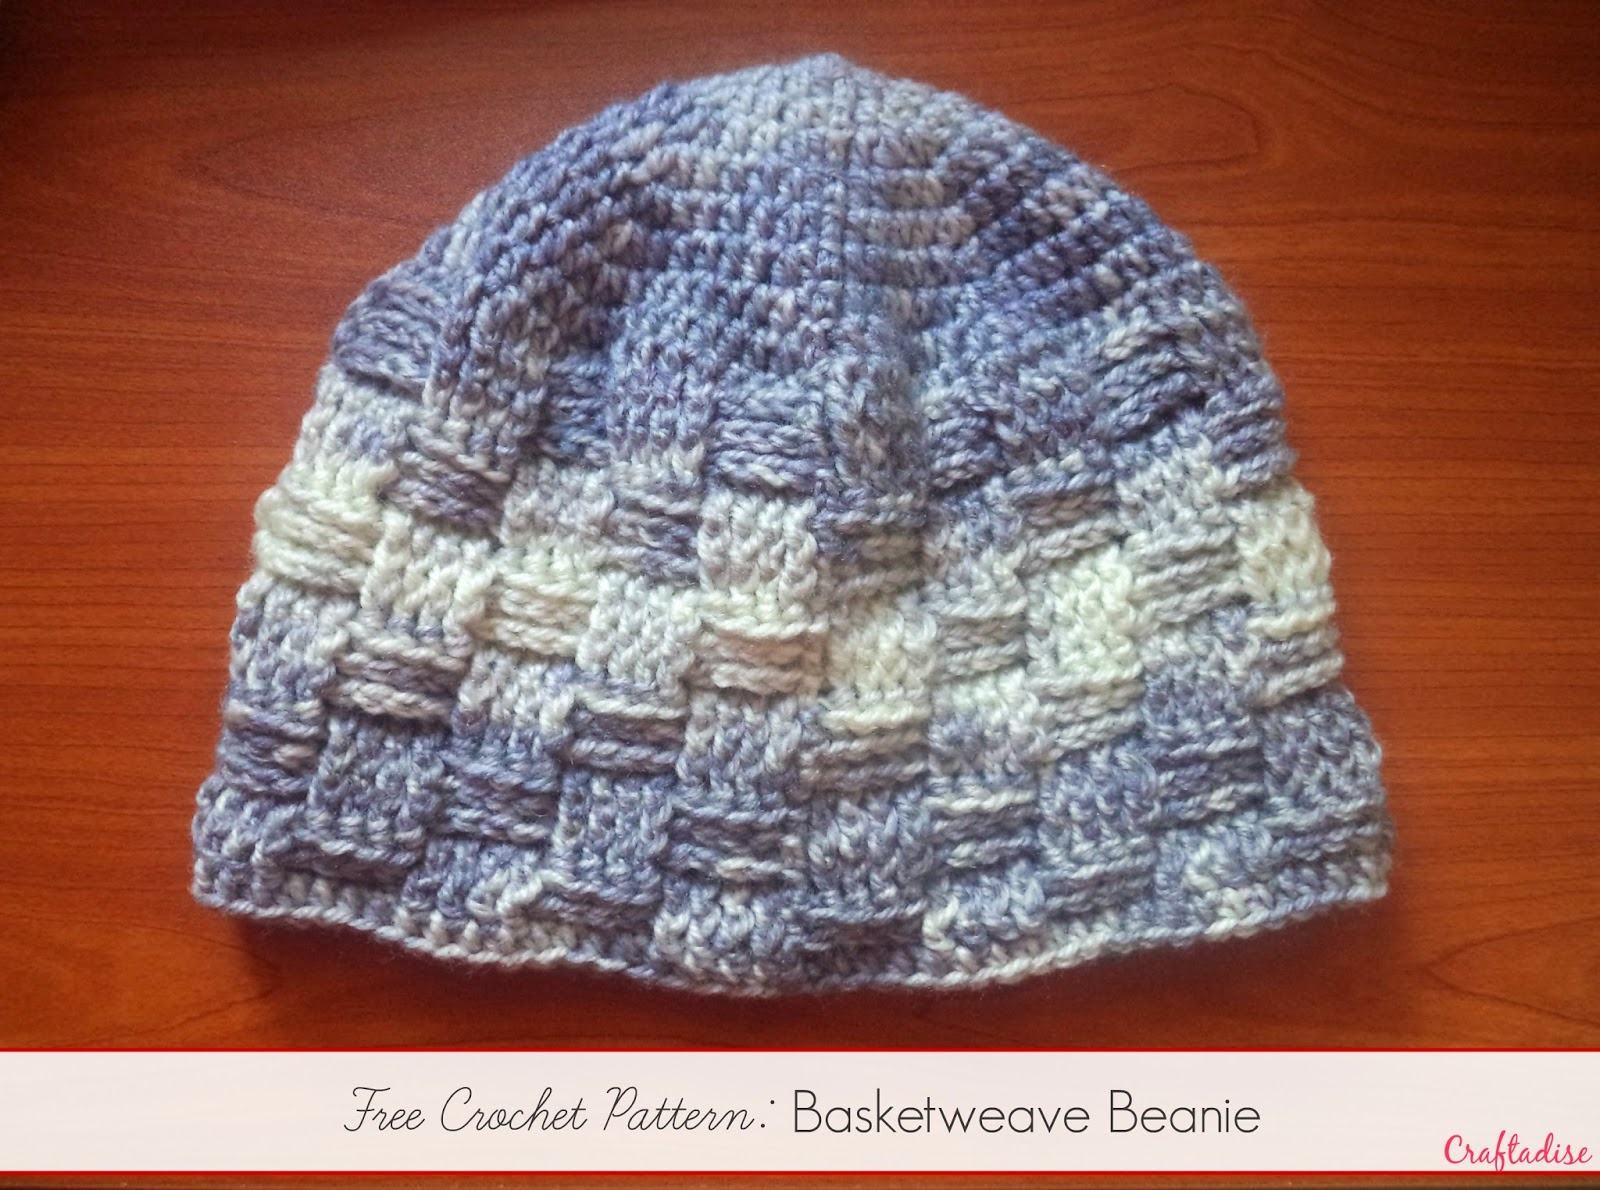 Made in craftadise top art crafts home decor blog in india free crochet pattern basketweave beanie bankloansurffo Choice Image